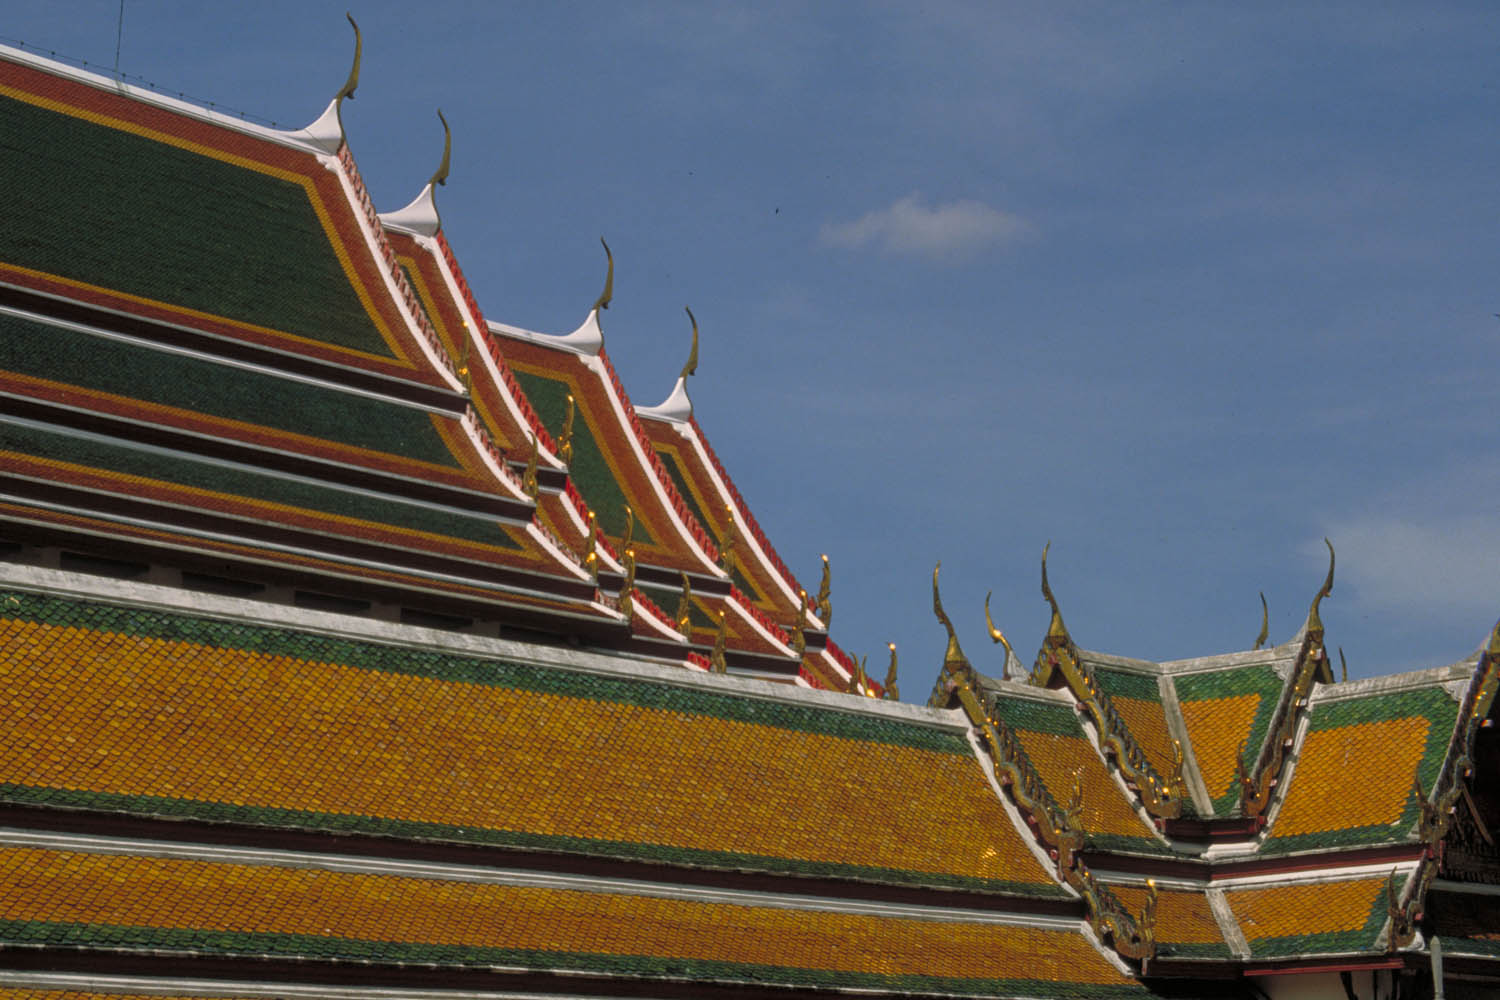 details of a temple roof